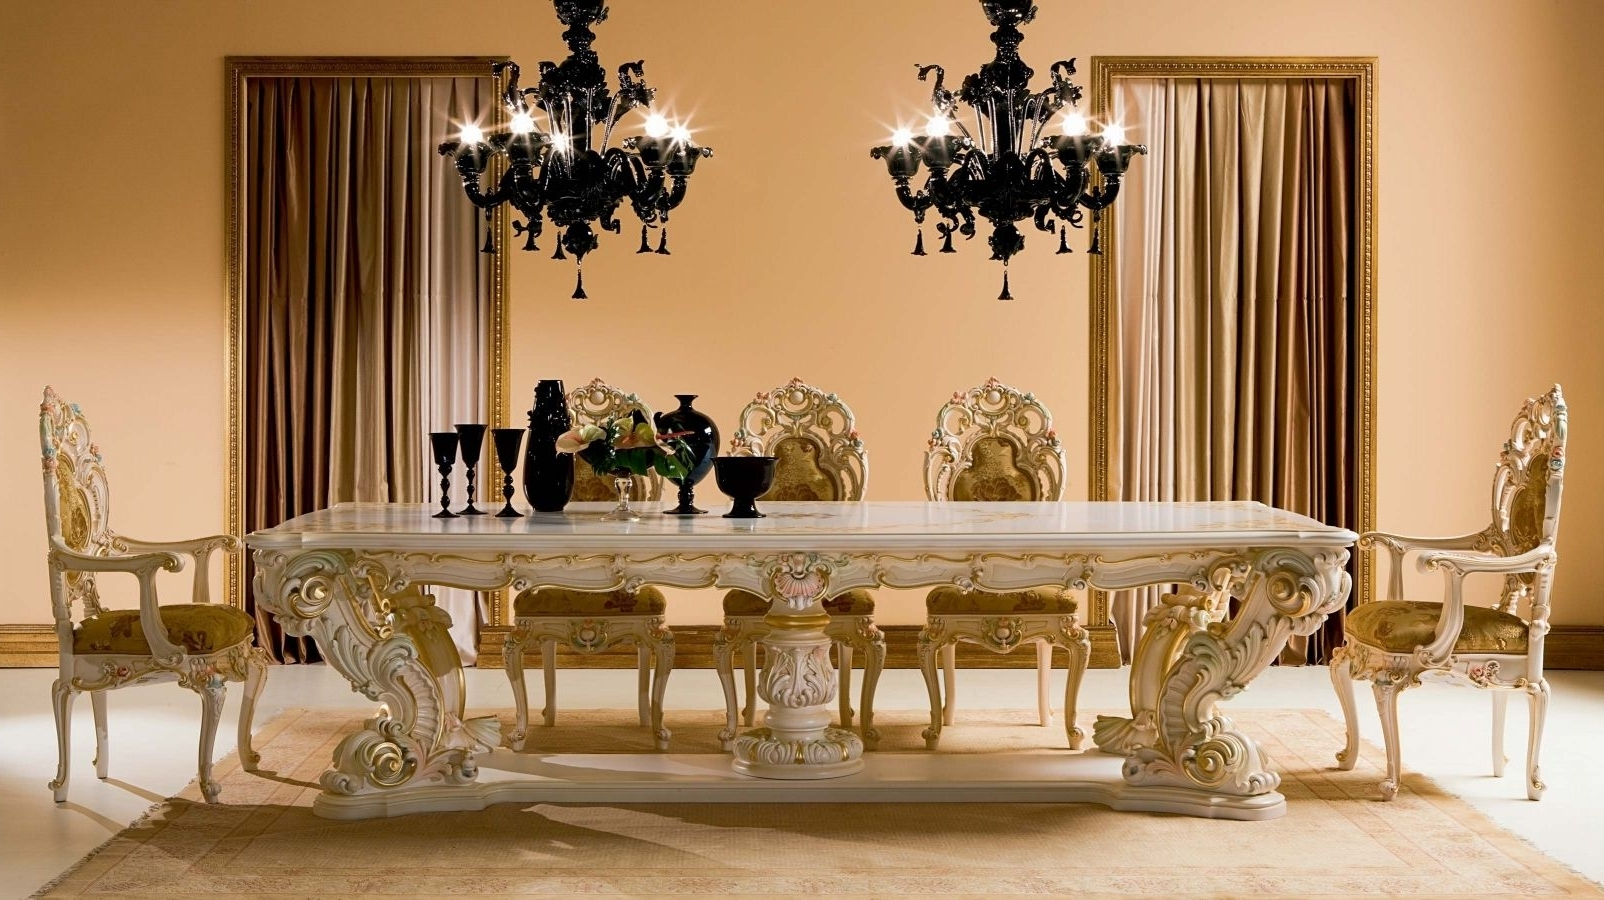 Crystal Dining Tables For Widely Used Classic Dining Table / Crystal / Rectangular / For Hotels – Minerva (View 12 of 25)